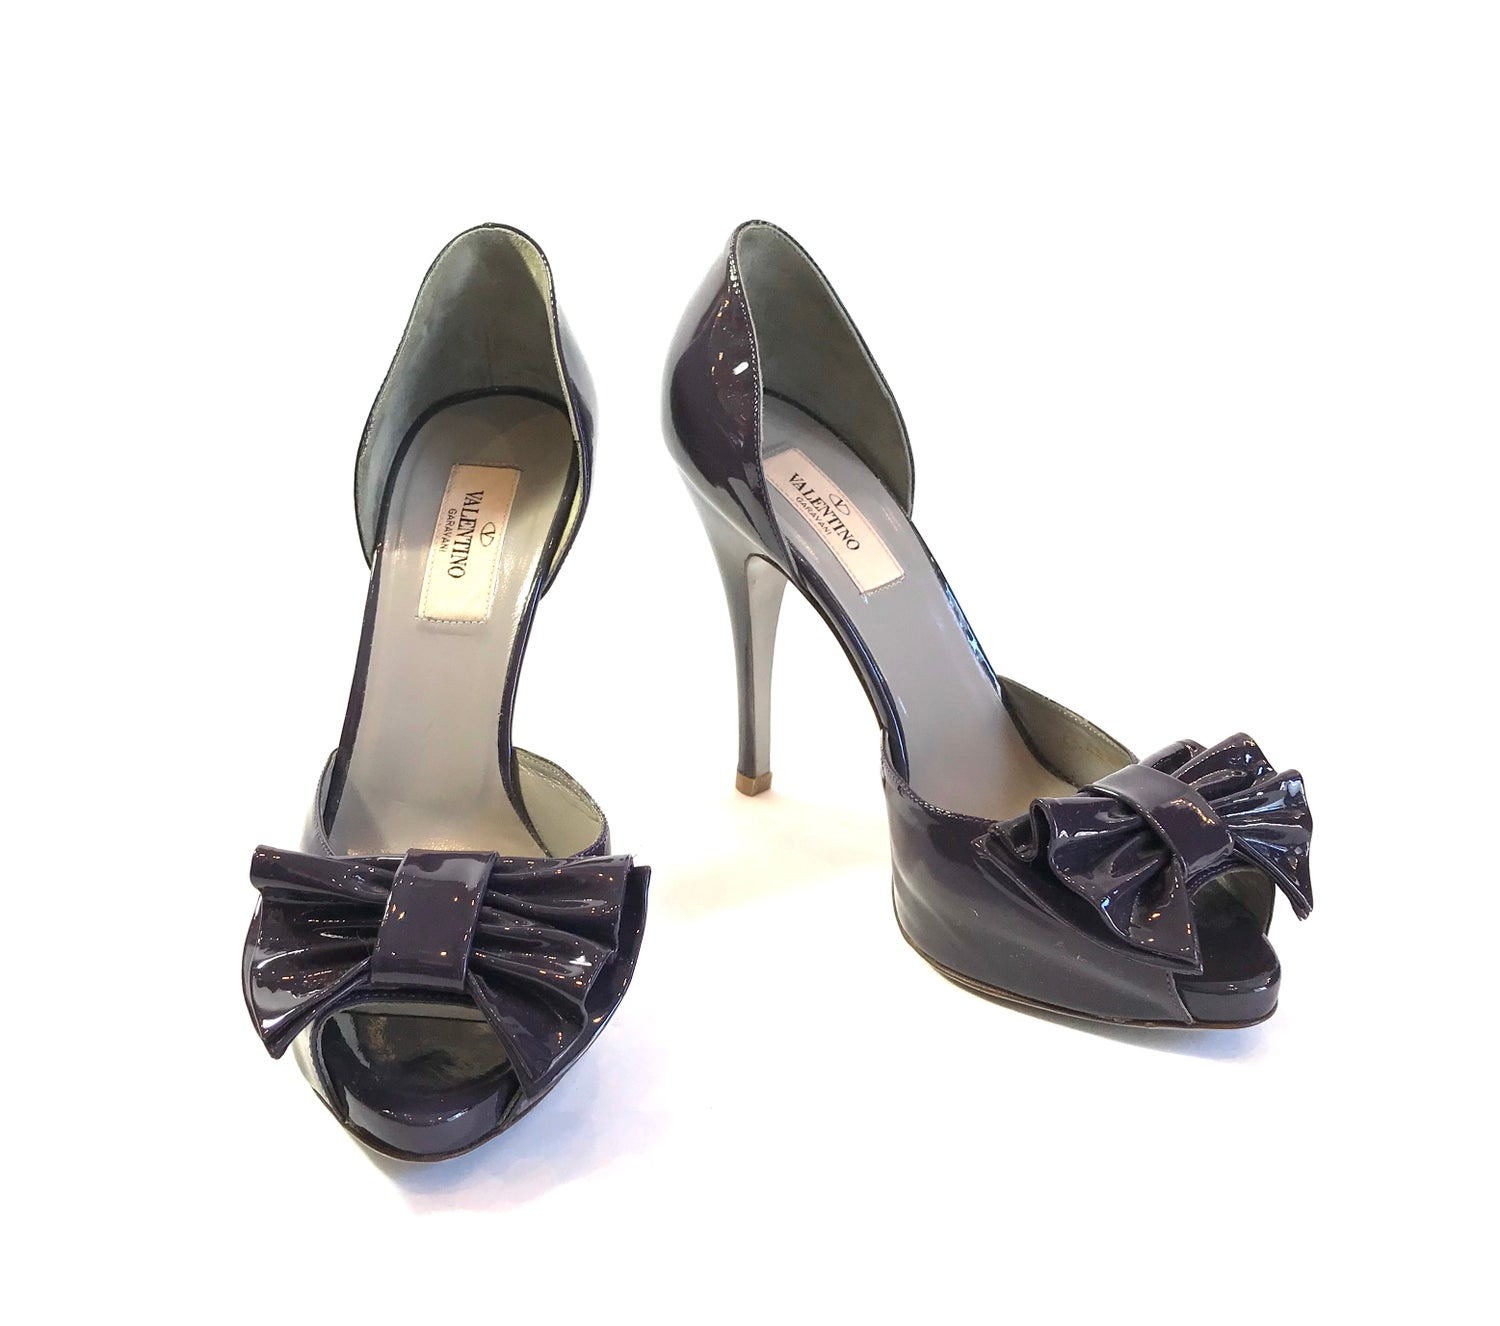 Image of Valentino Size 37.5 D'Orsay Pumps 768-159